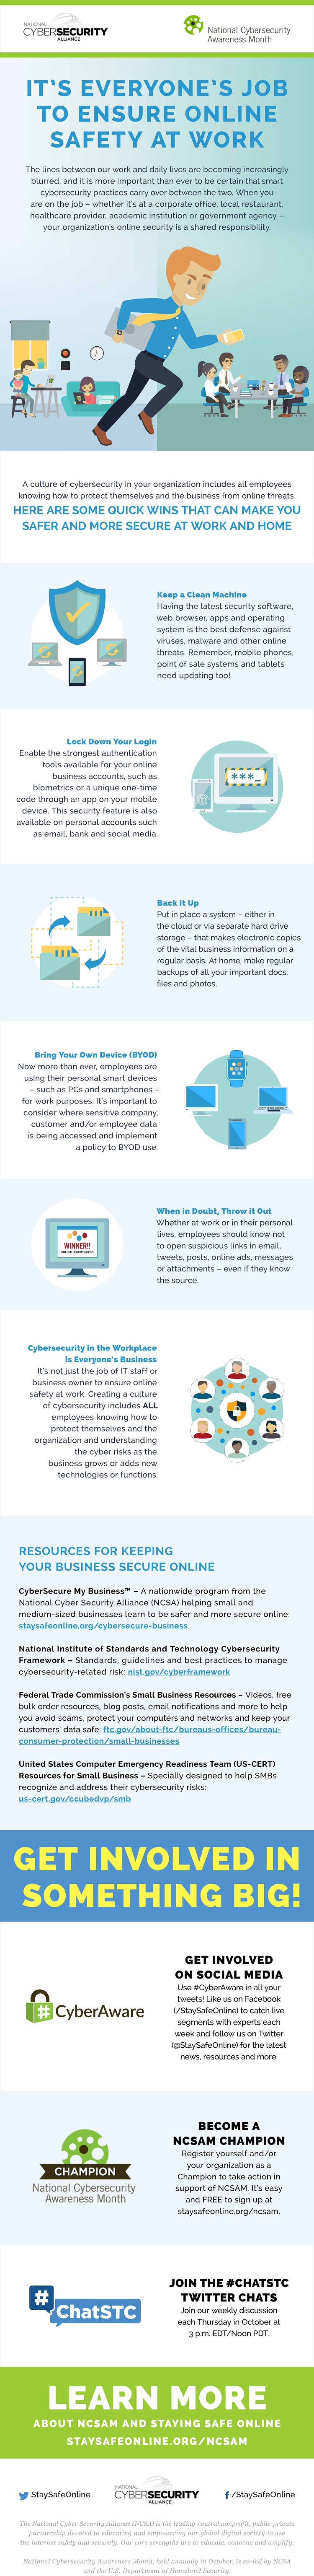 Workplace cybersecurity infographic